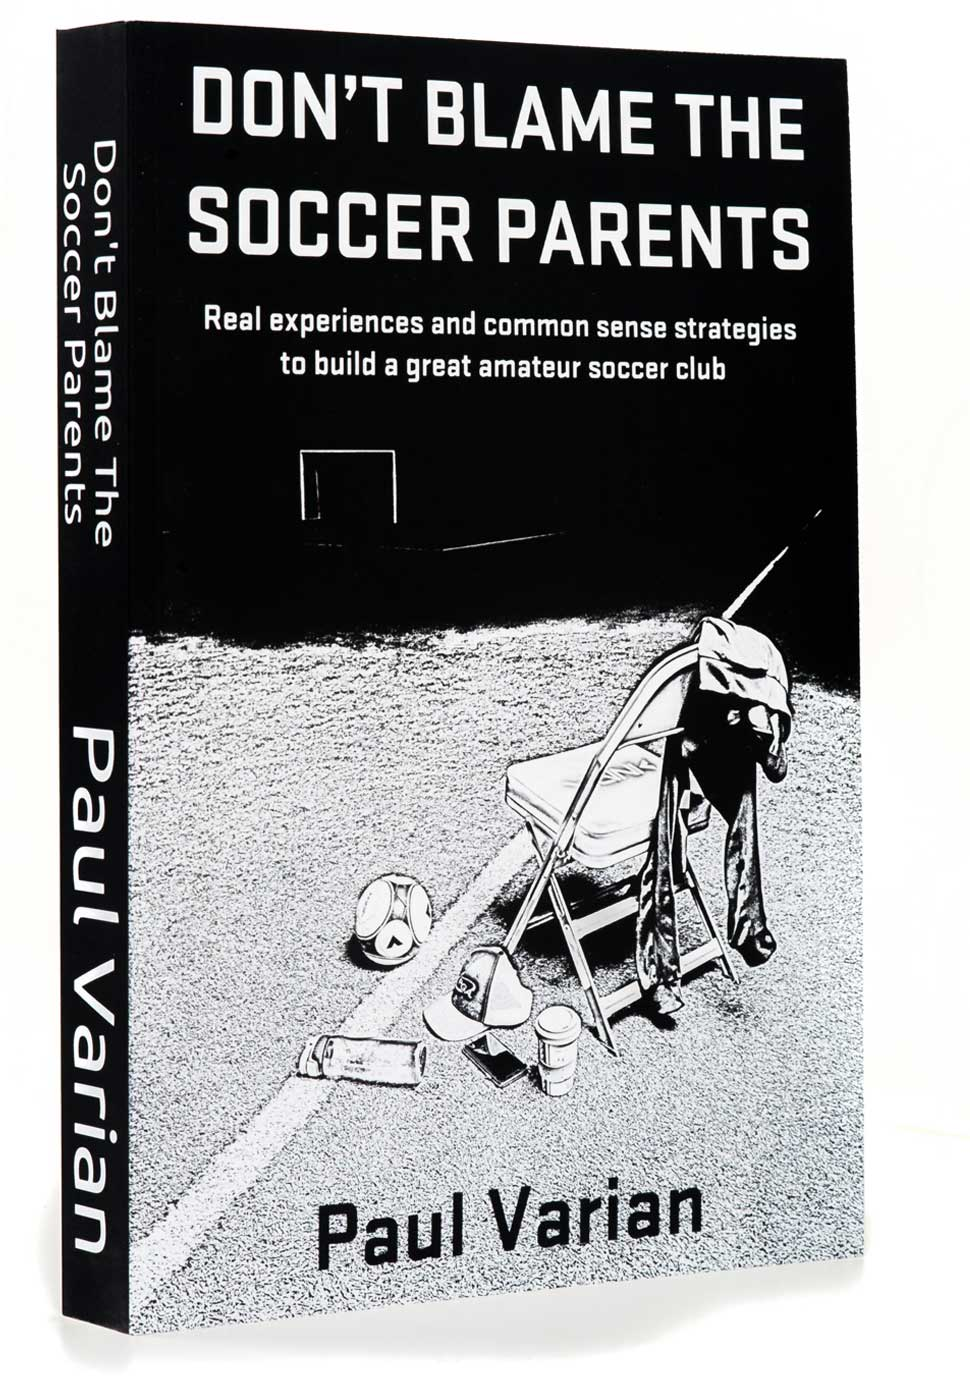 Capitis Consulting |Book - Don't Blame The Soccer Parents by Paul Varian